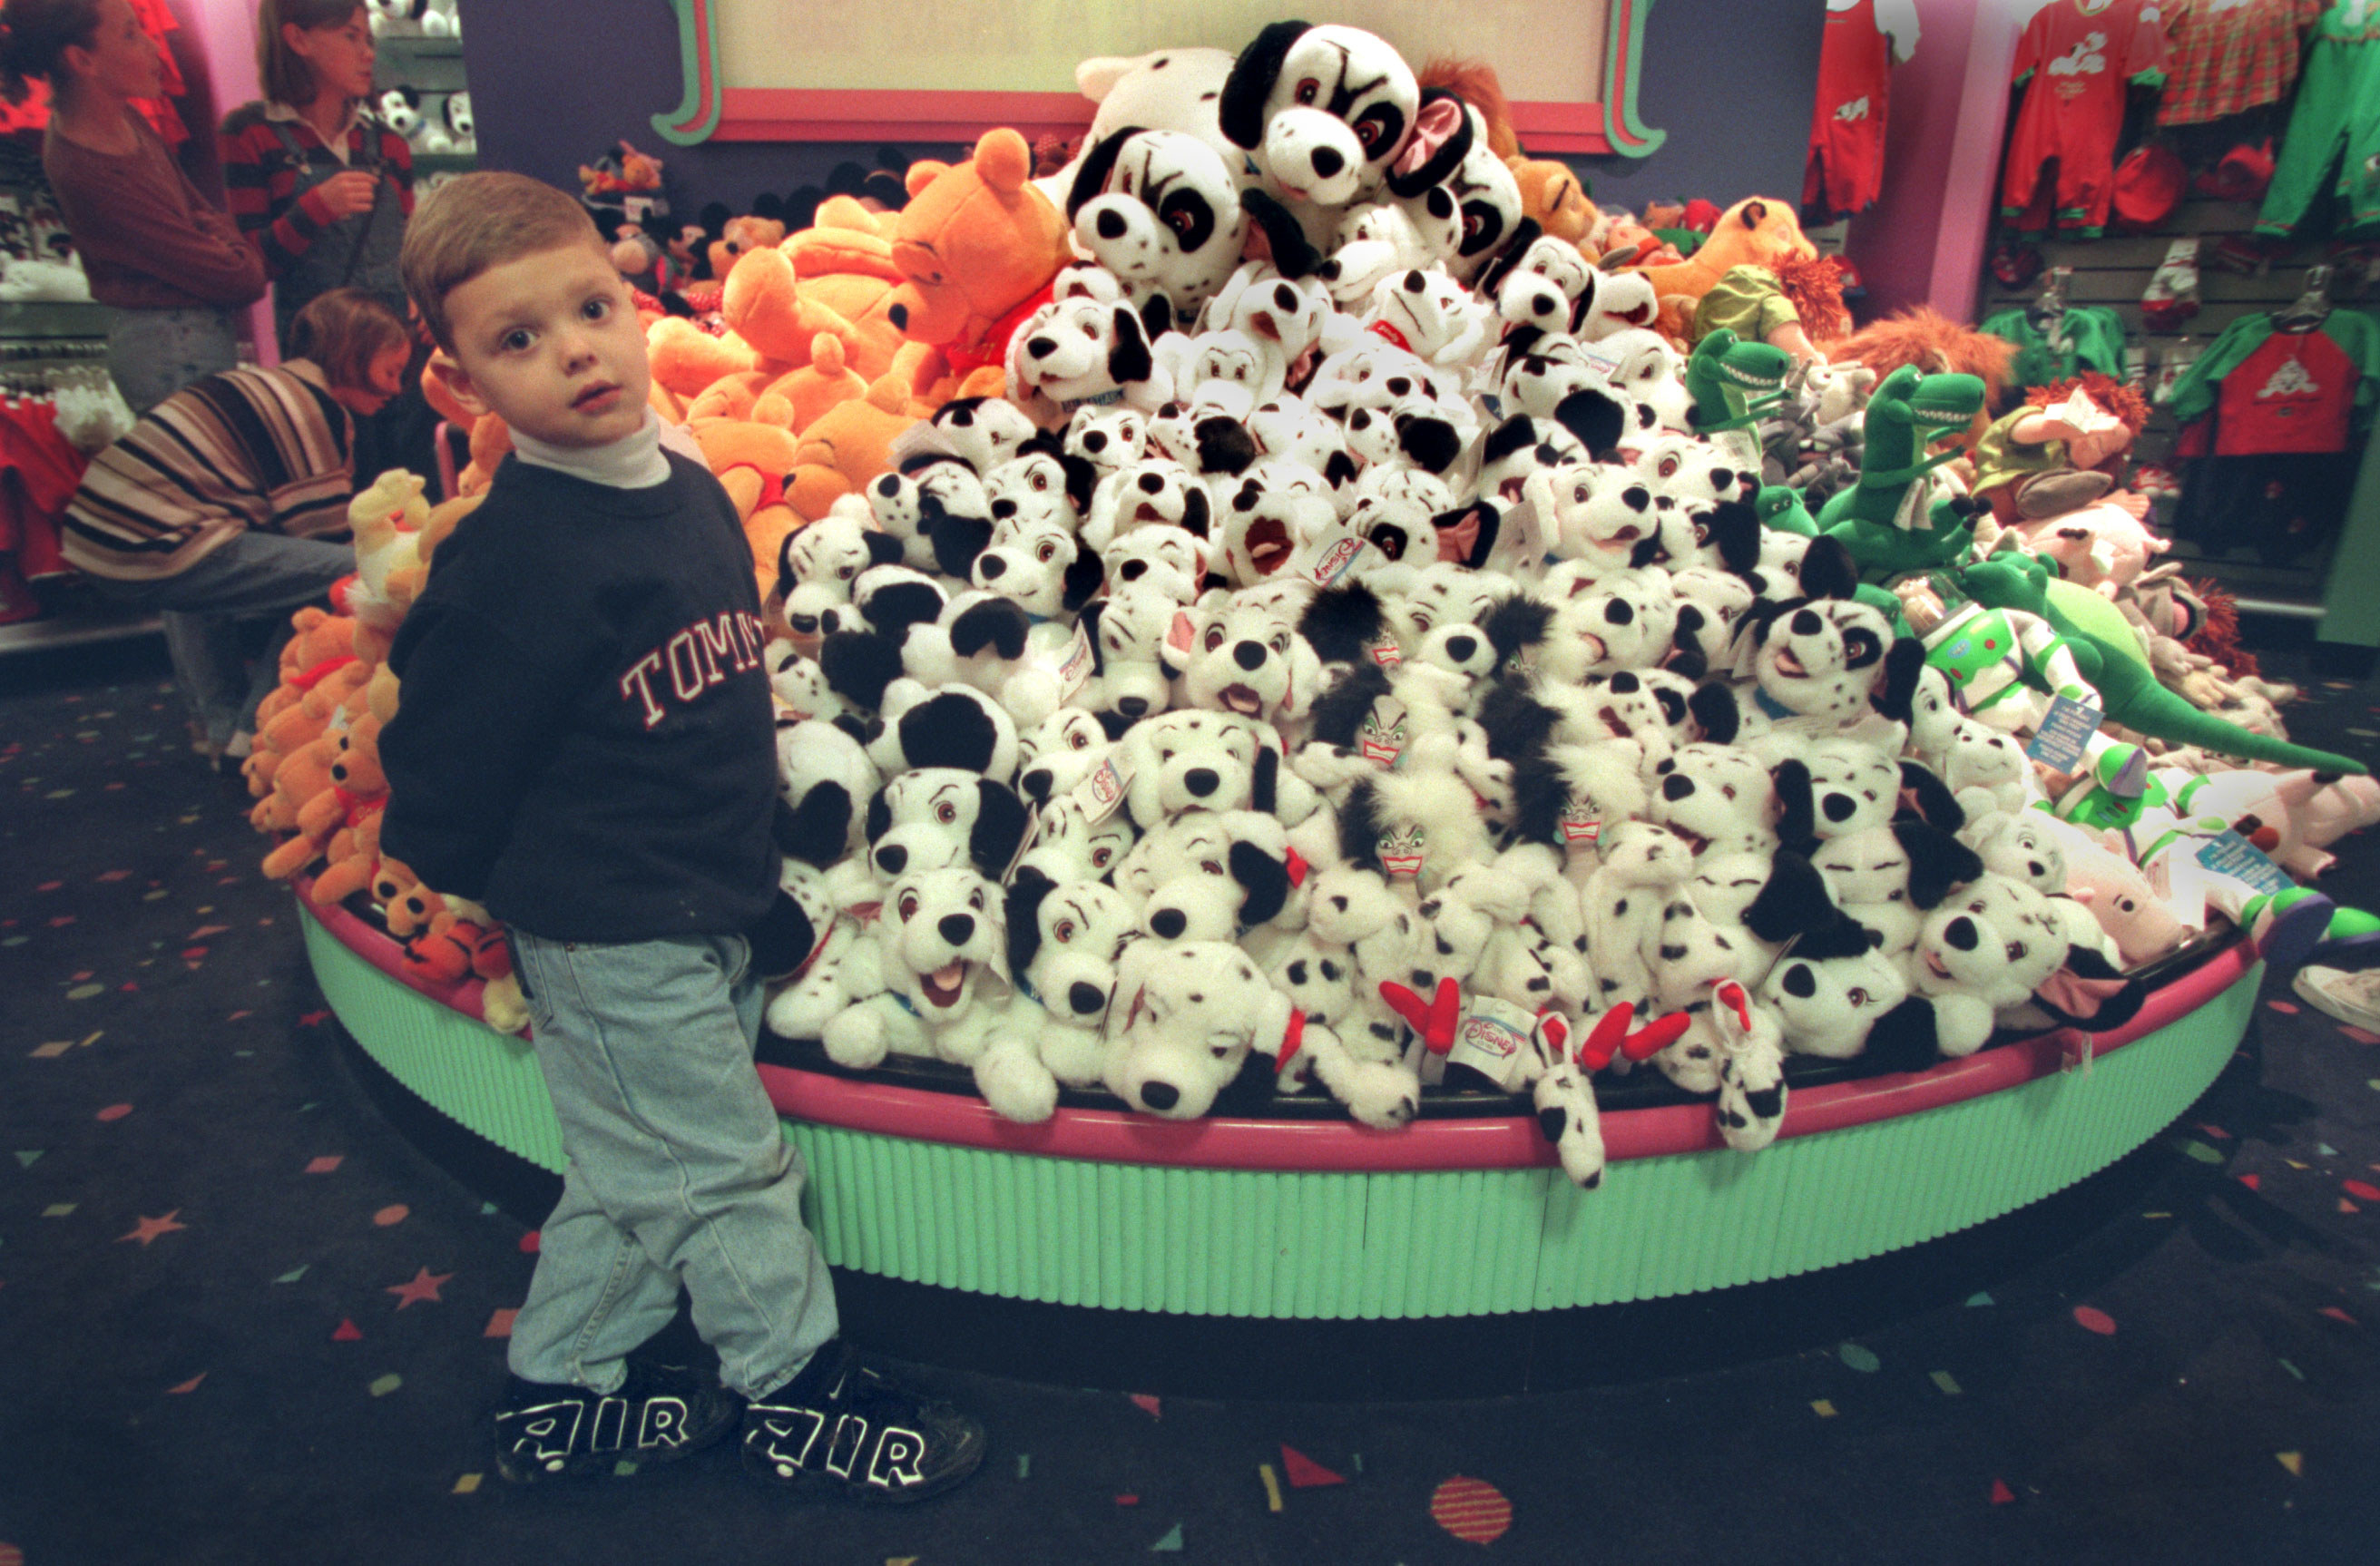 A kid standing next to a stack of 101 Dalmatians stuffed animals in the back of a Disney Store.